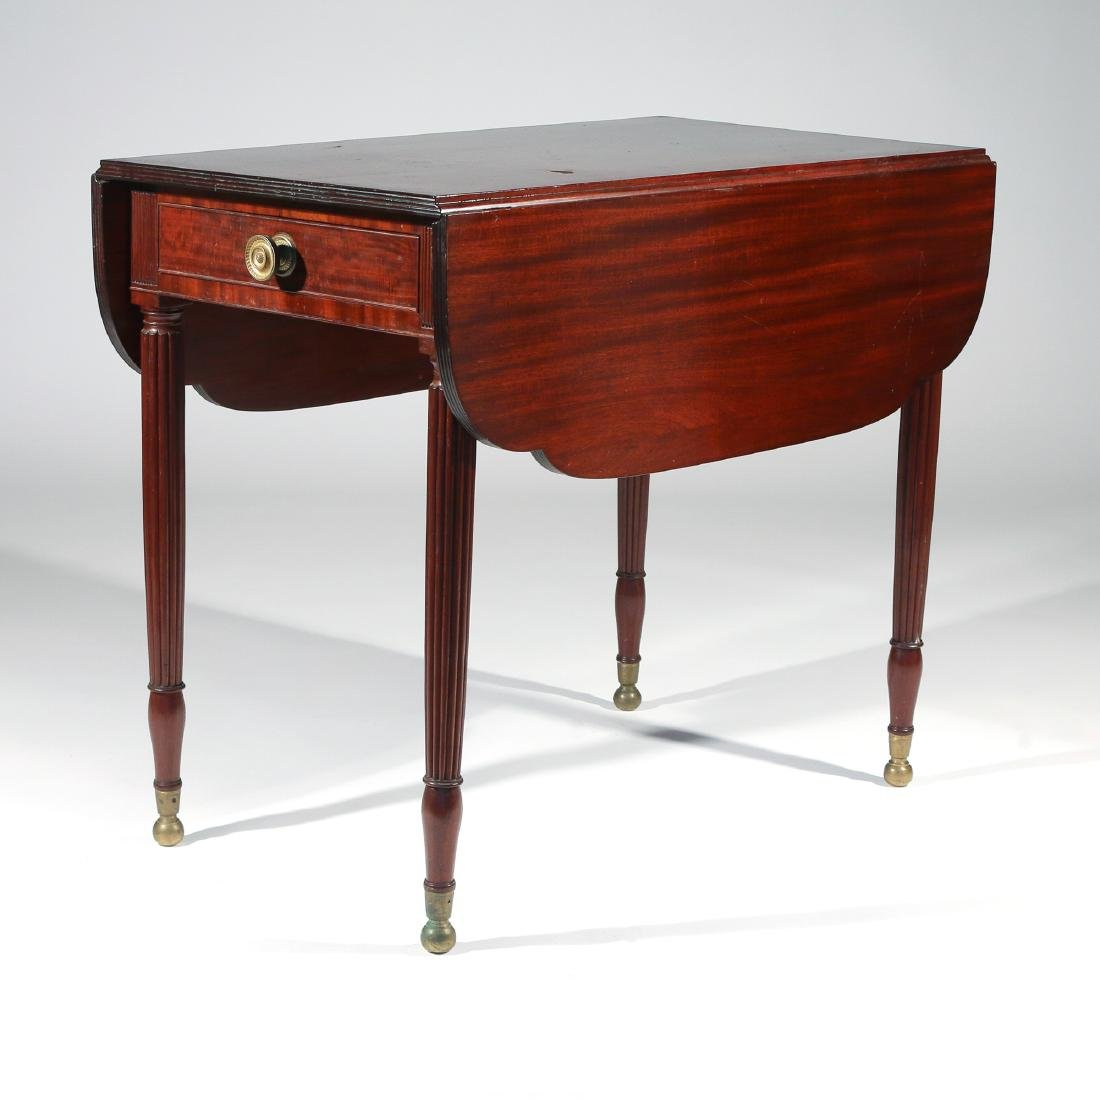 LATE FEDERAL CARVED MAHOGANY PEMBROKE TABLE